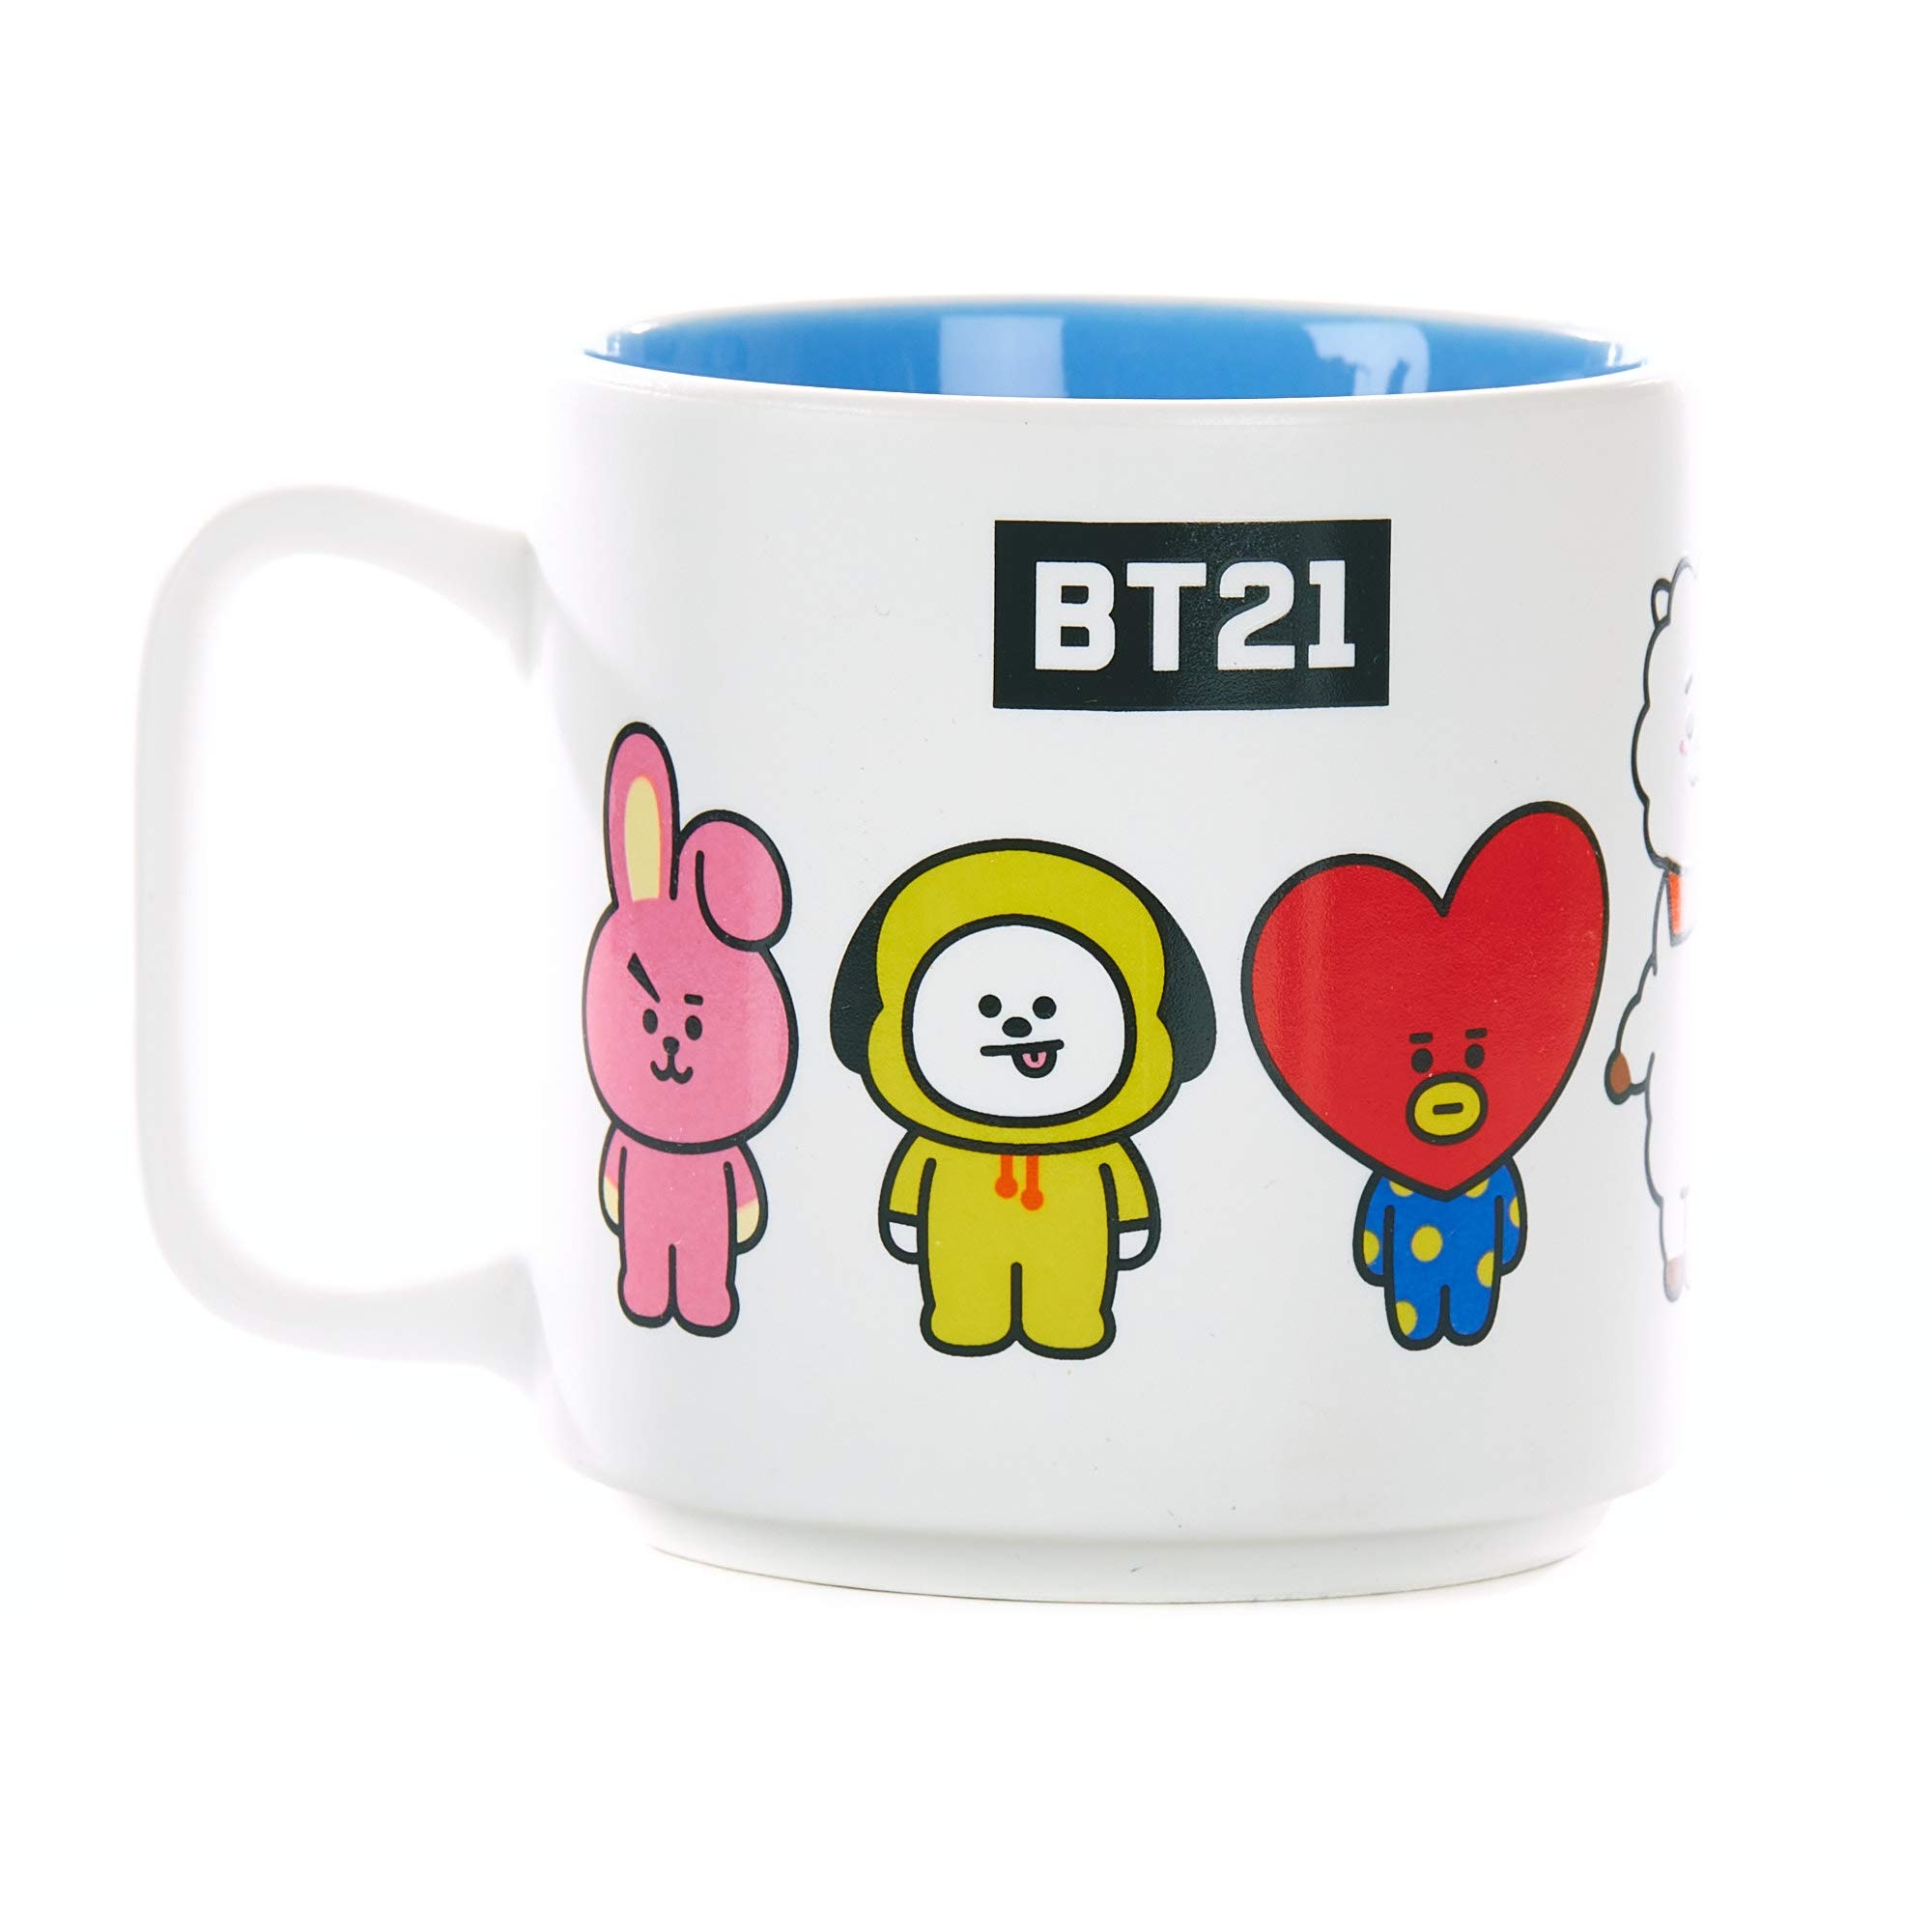 Paladone BT21 Favourite Characters-Officially Licensed Novelty Drinking Mug, Ceramic, White